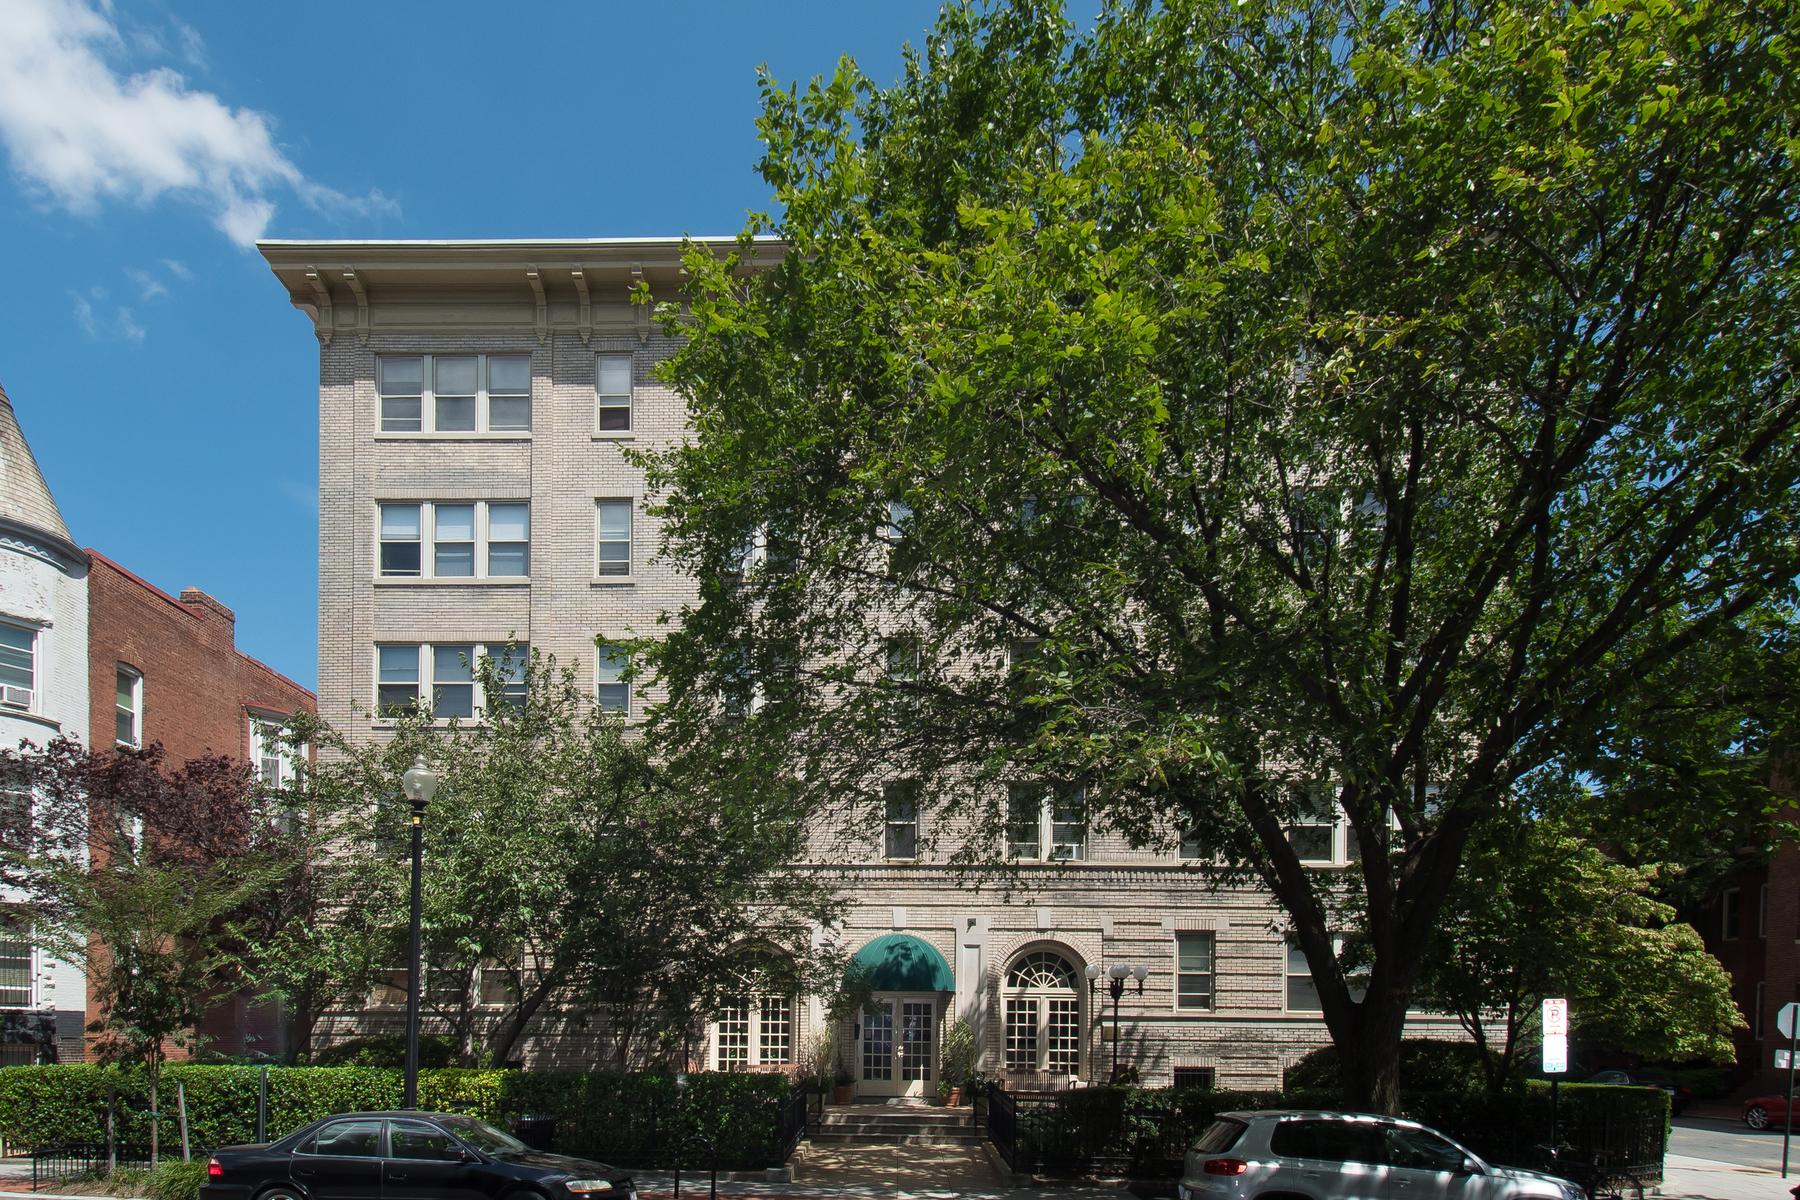 Condominium for Sale at Dupont Circle 1725 17th Street Nw 308 Washington, District Of Columbia, 20009 United States